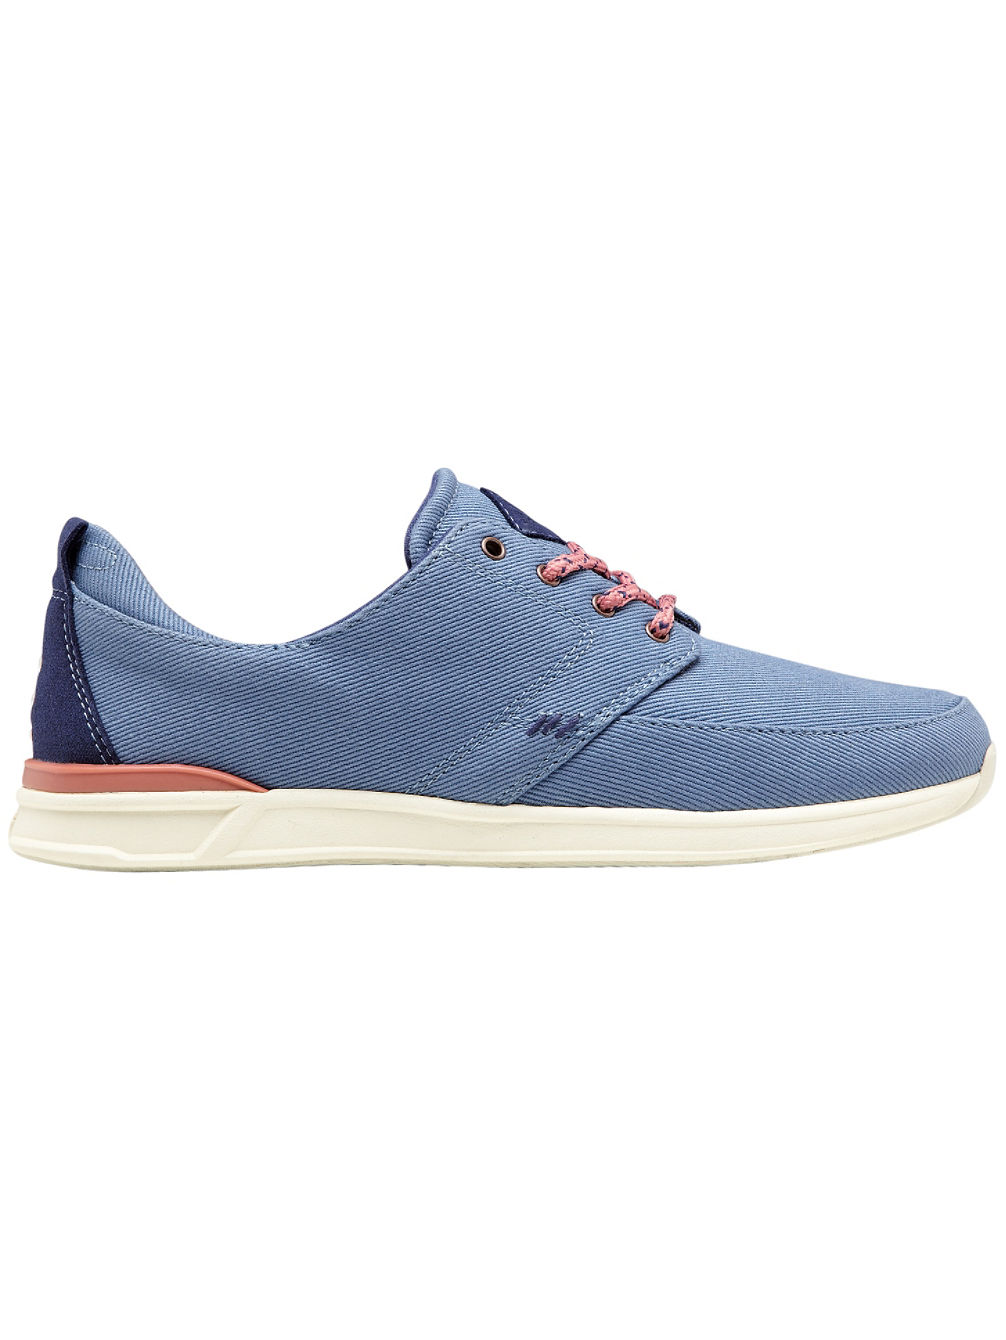 Rover Low Sneakers Women